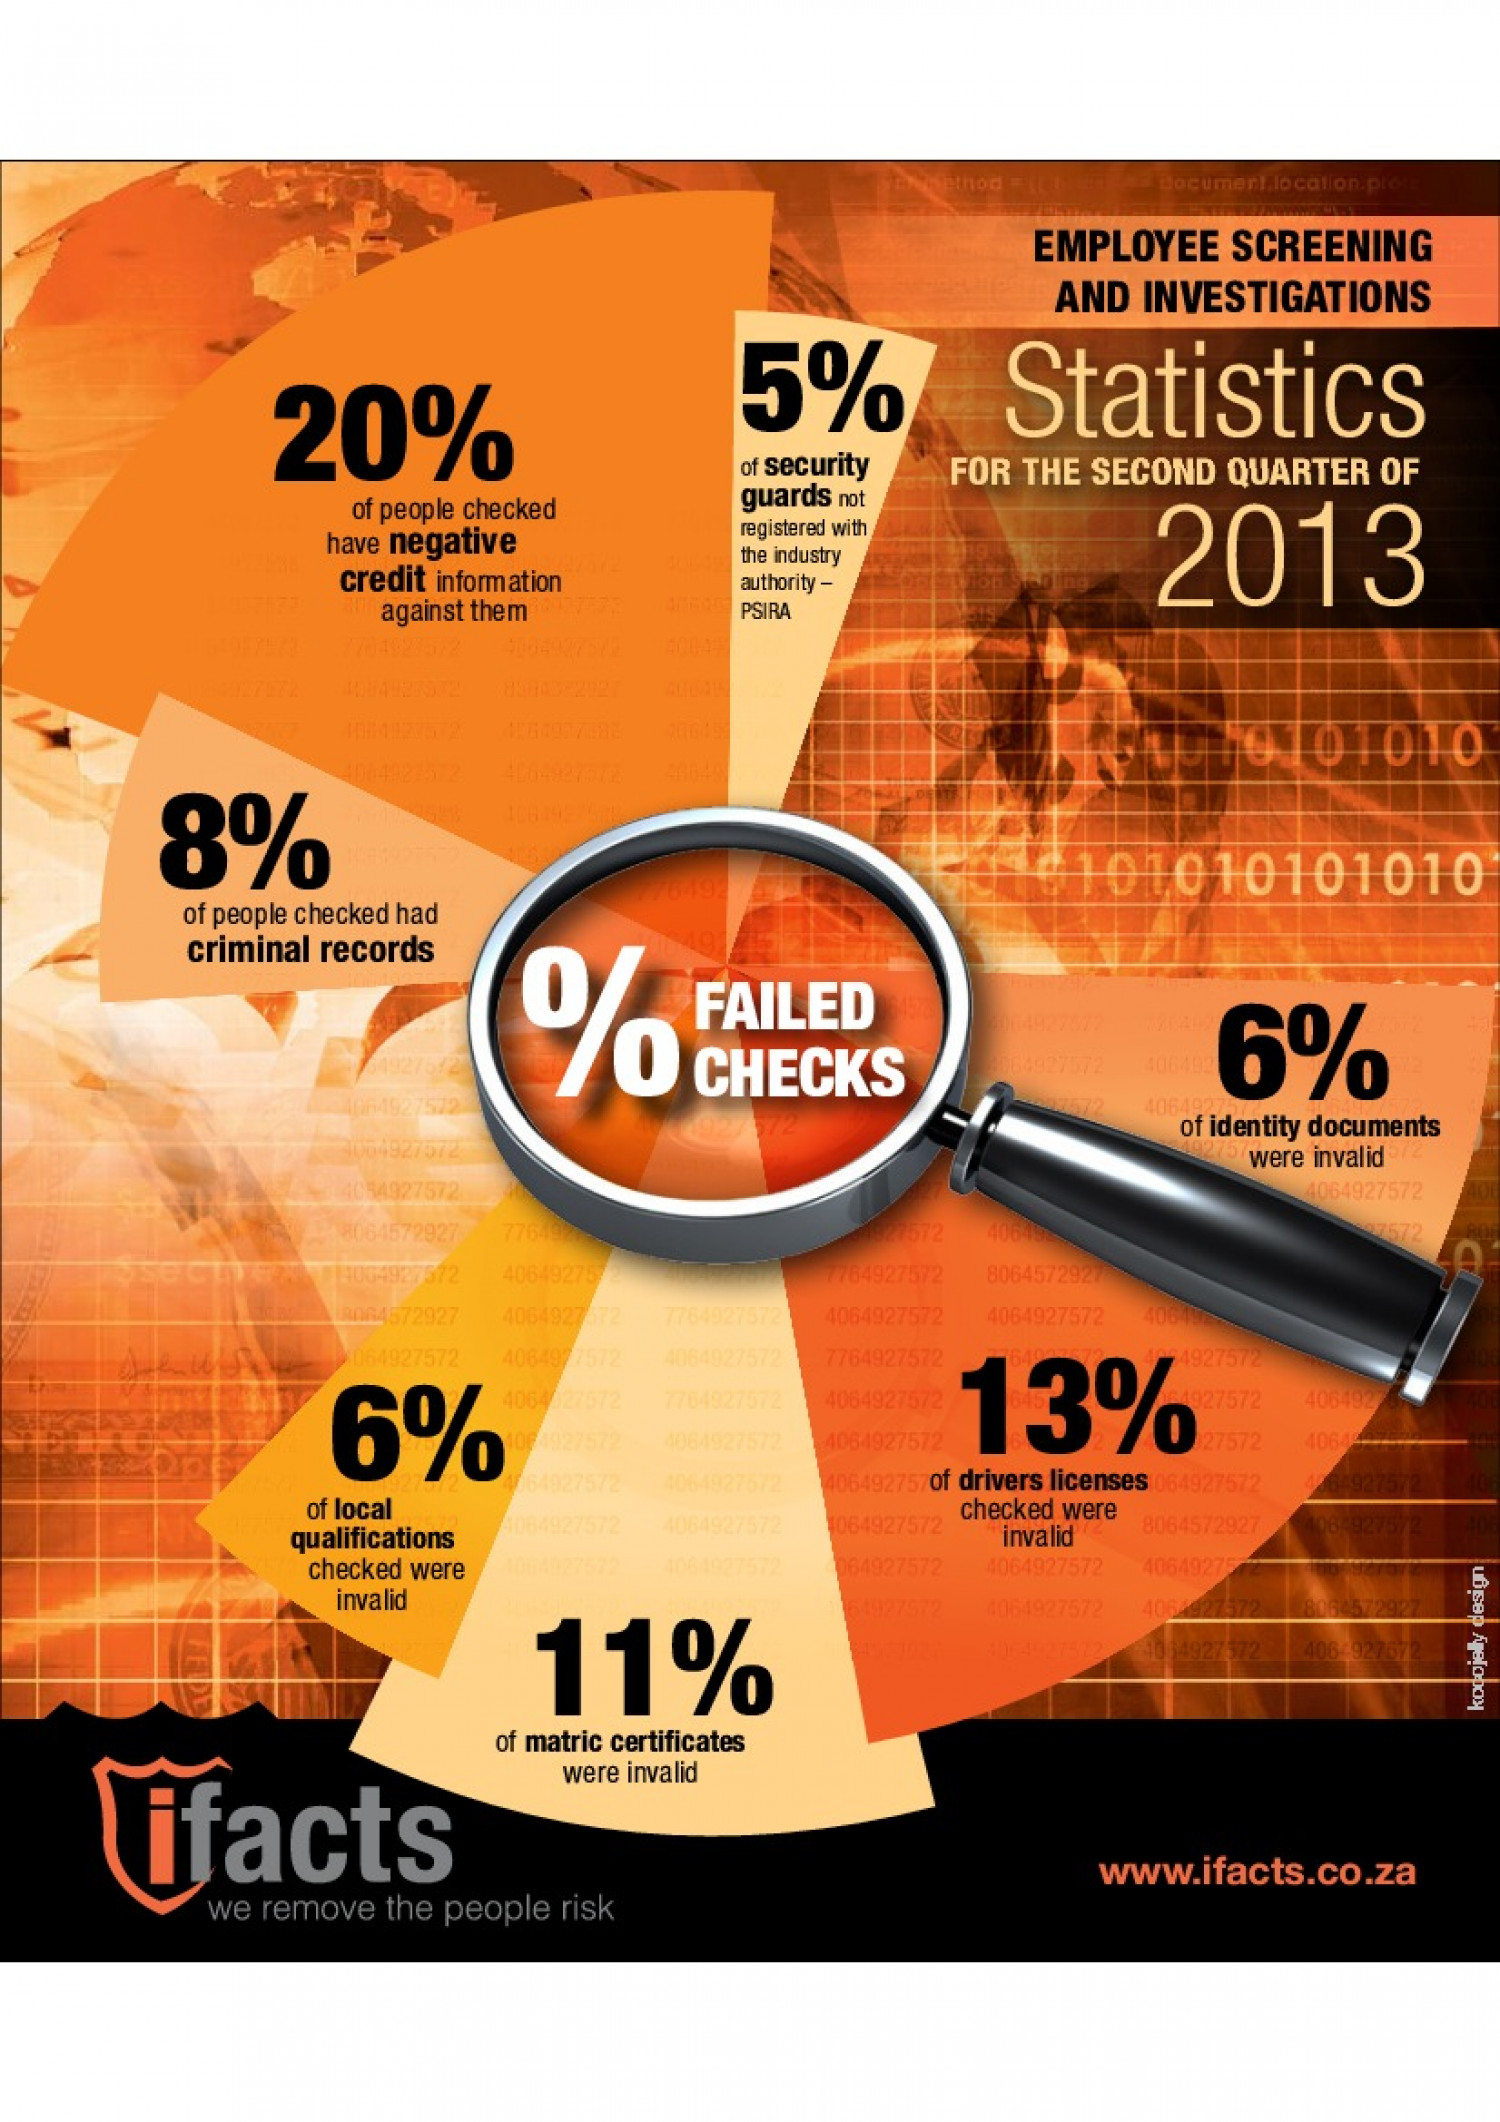 Employee Screening & Investigations Statistics - Second Quater of 2013 Infographic